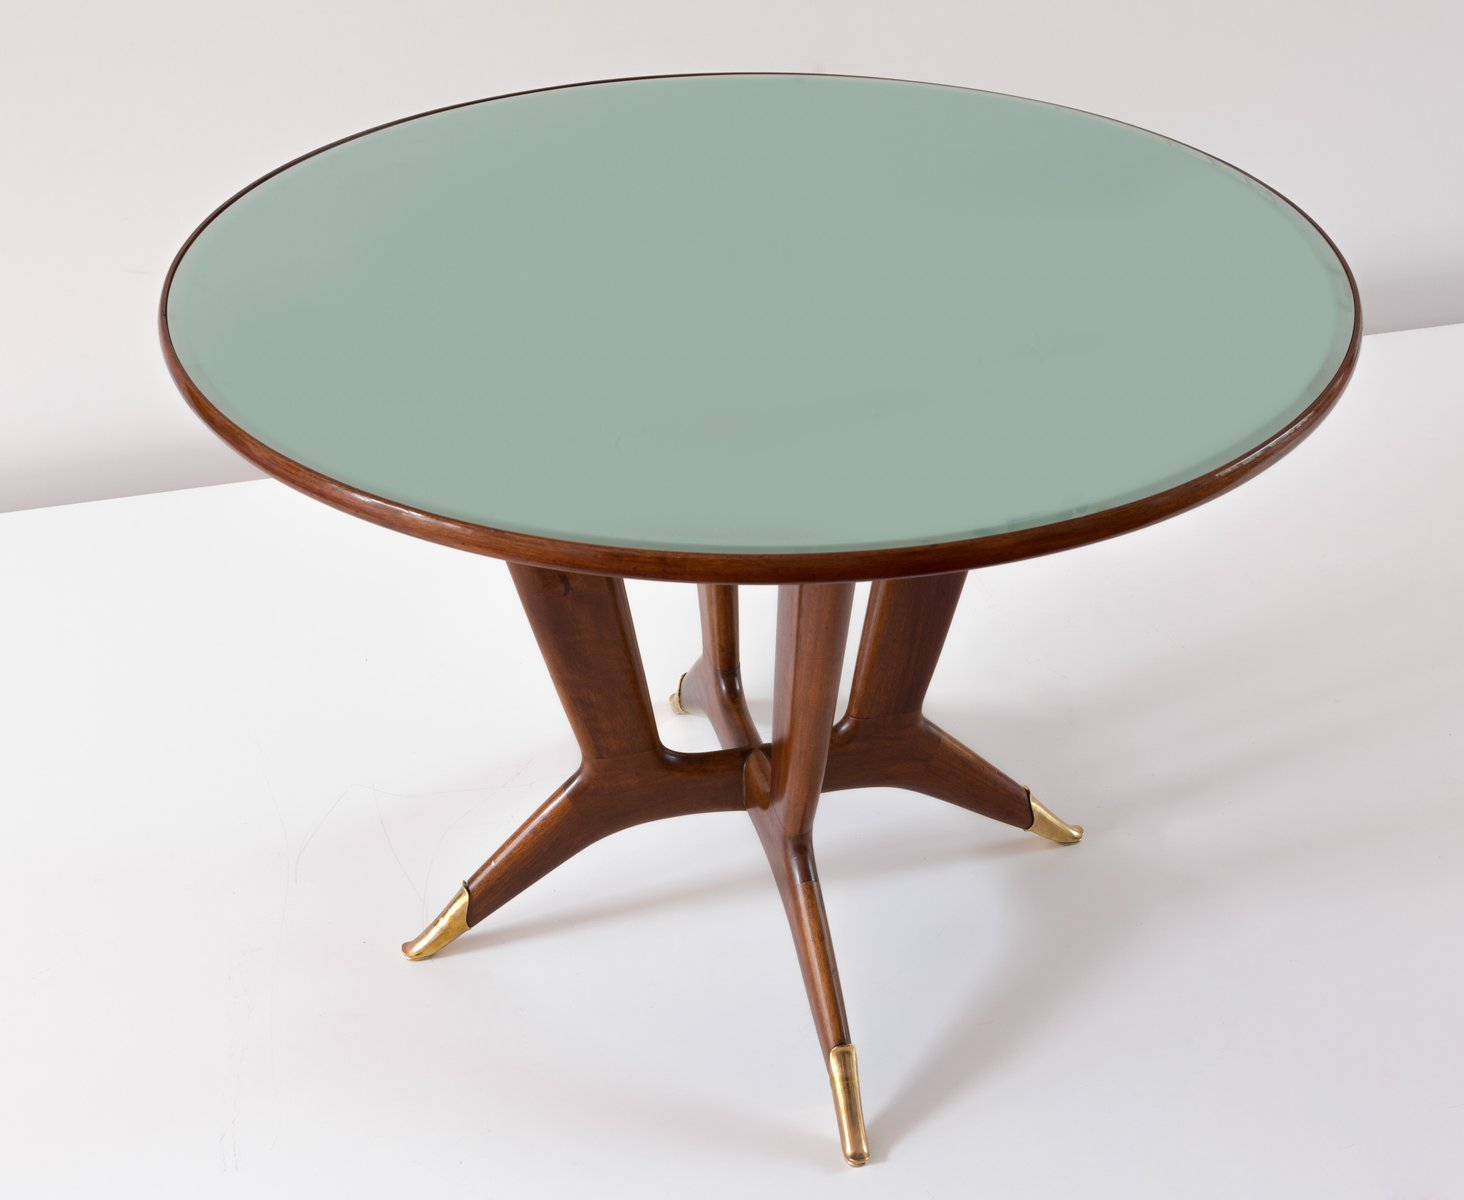 Center Table by Guglielmo Ulrich 1940s for sale at Pamono